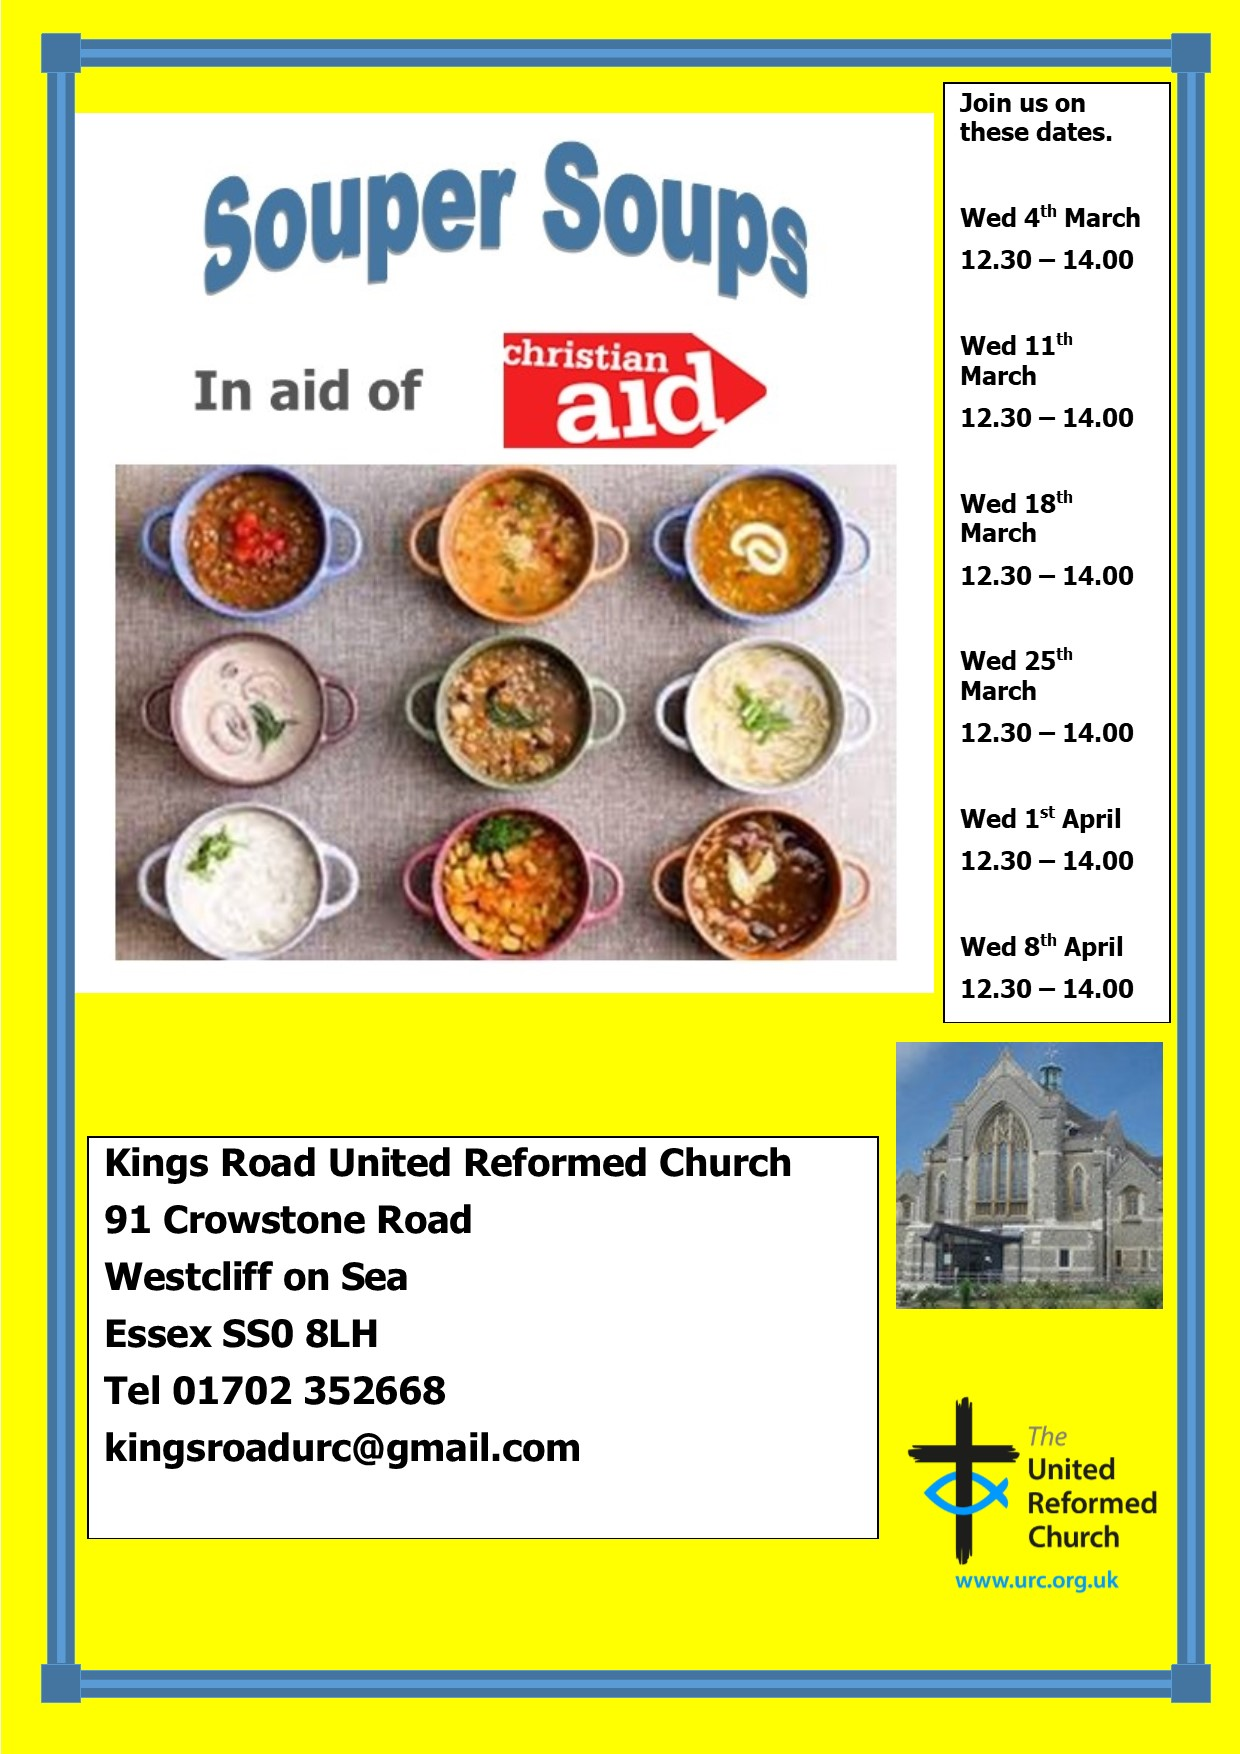 Souper Soups in aid of Christian Aid